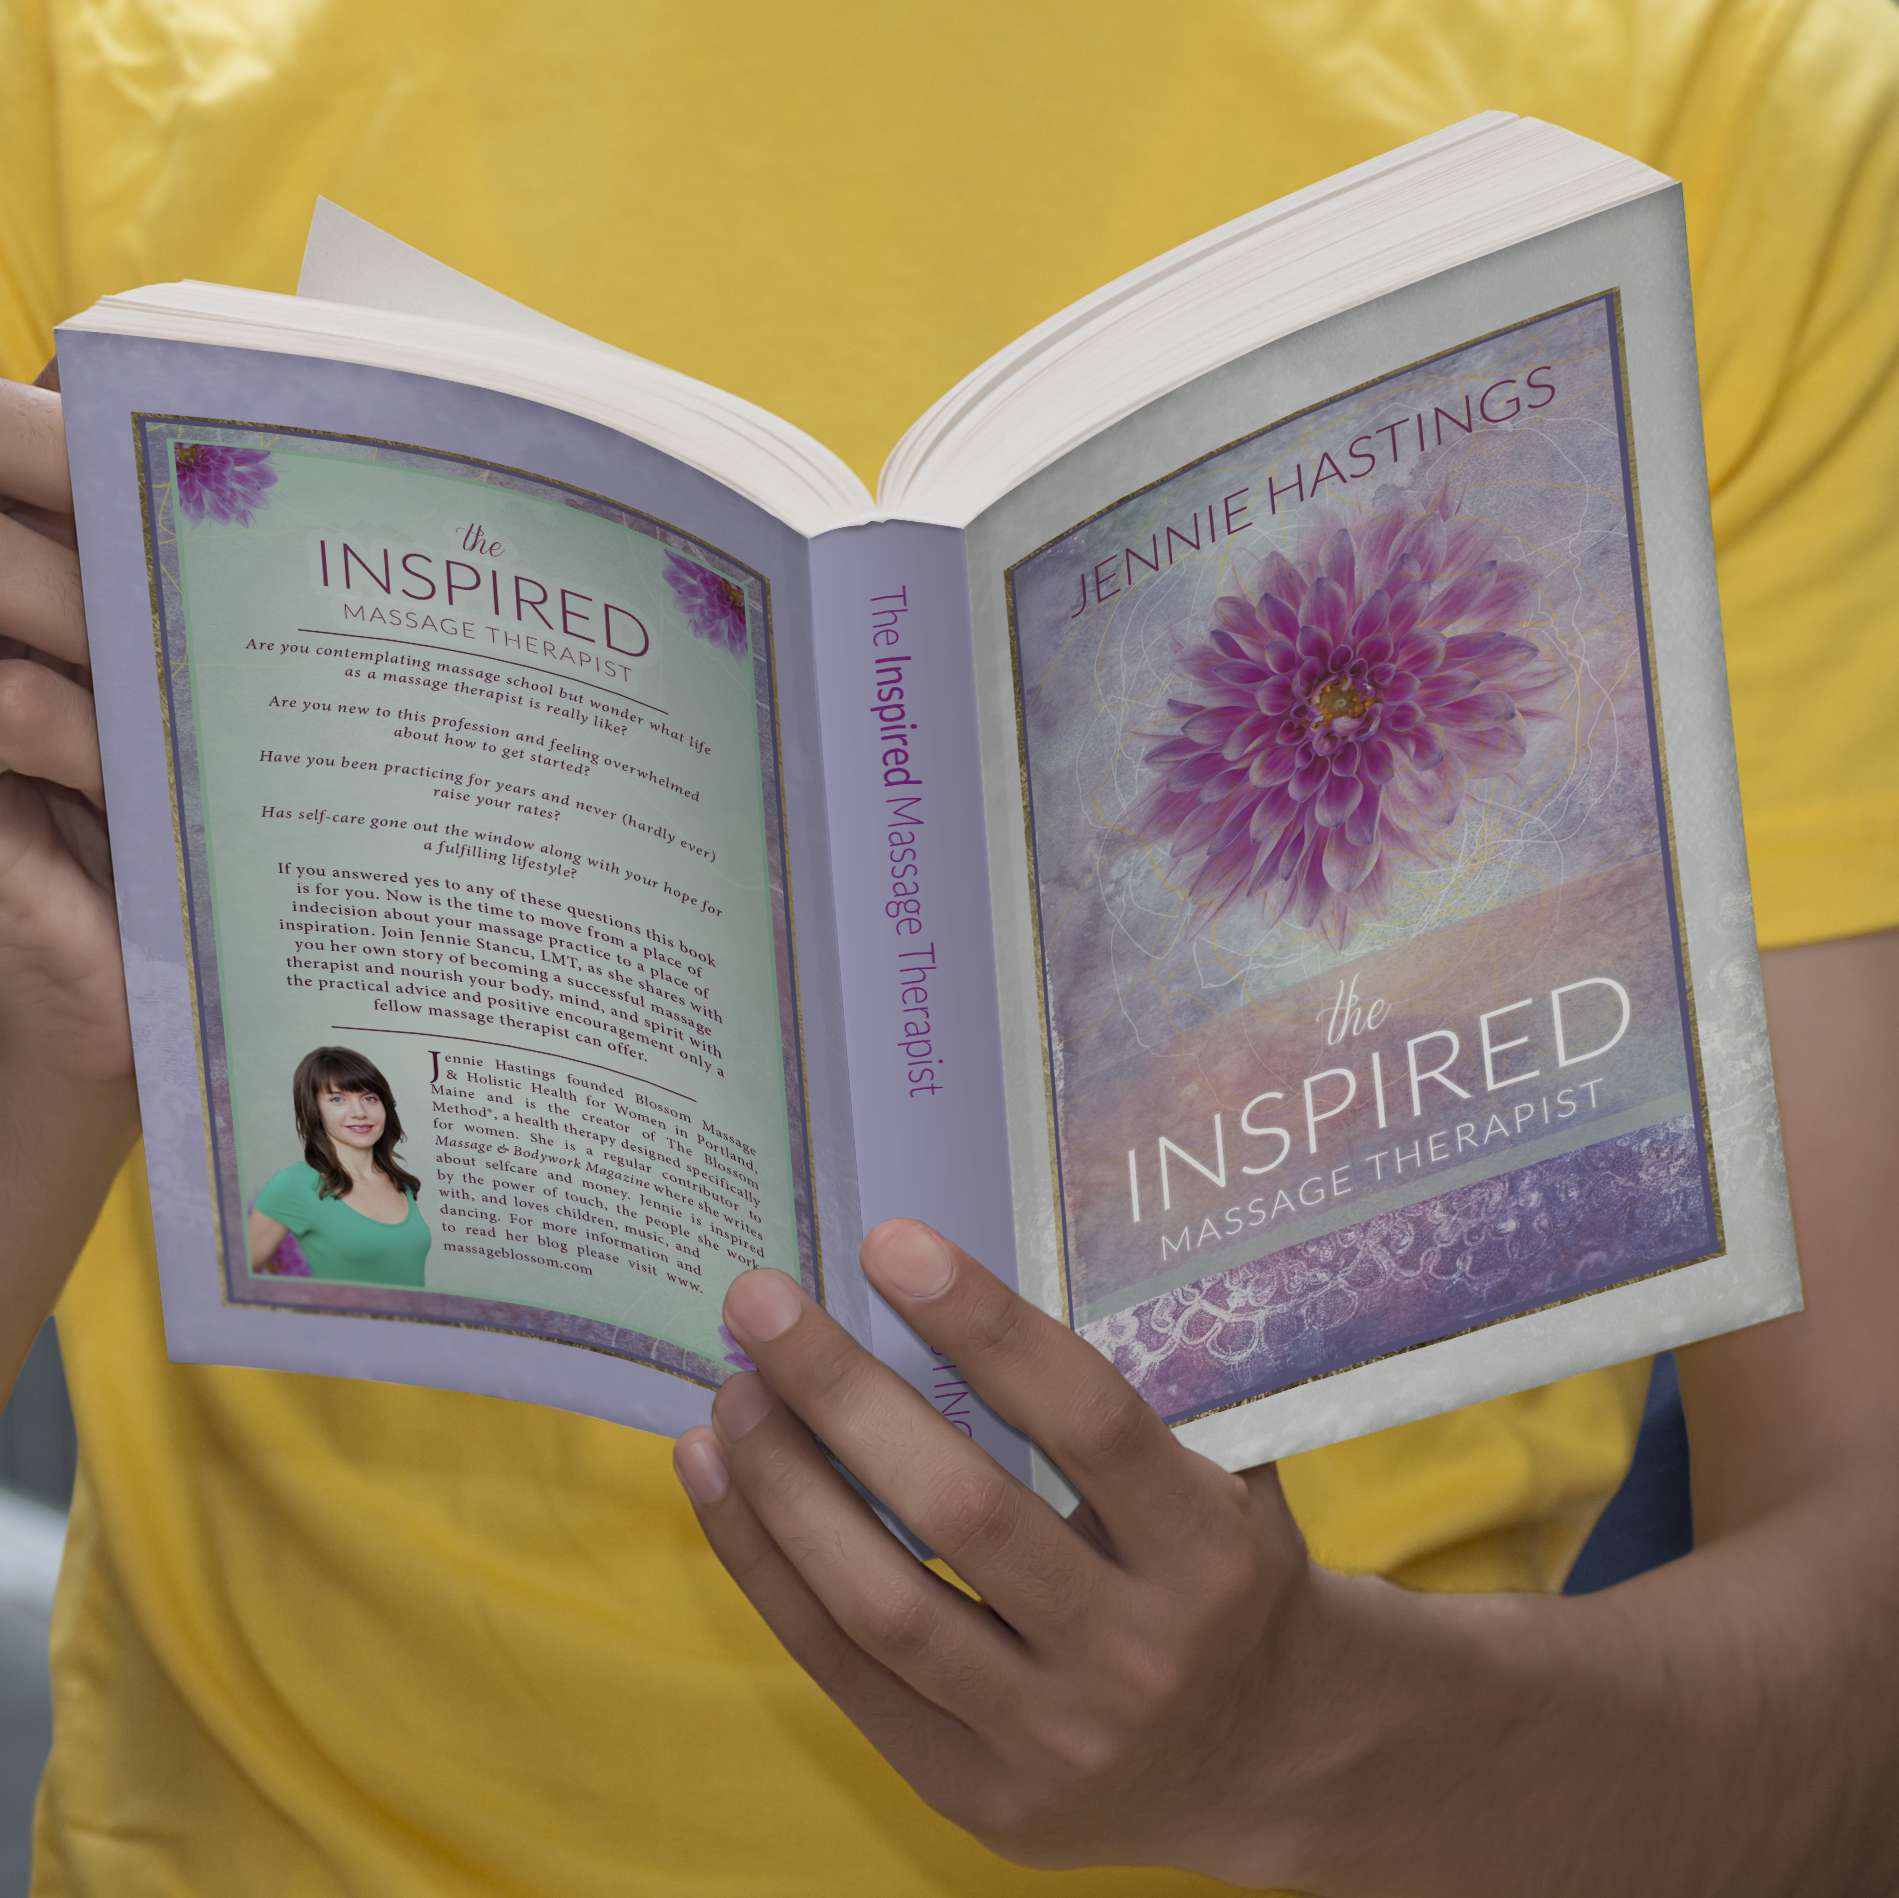 Inspwired Book Cover Design | The Inspired Massage Therapist III